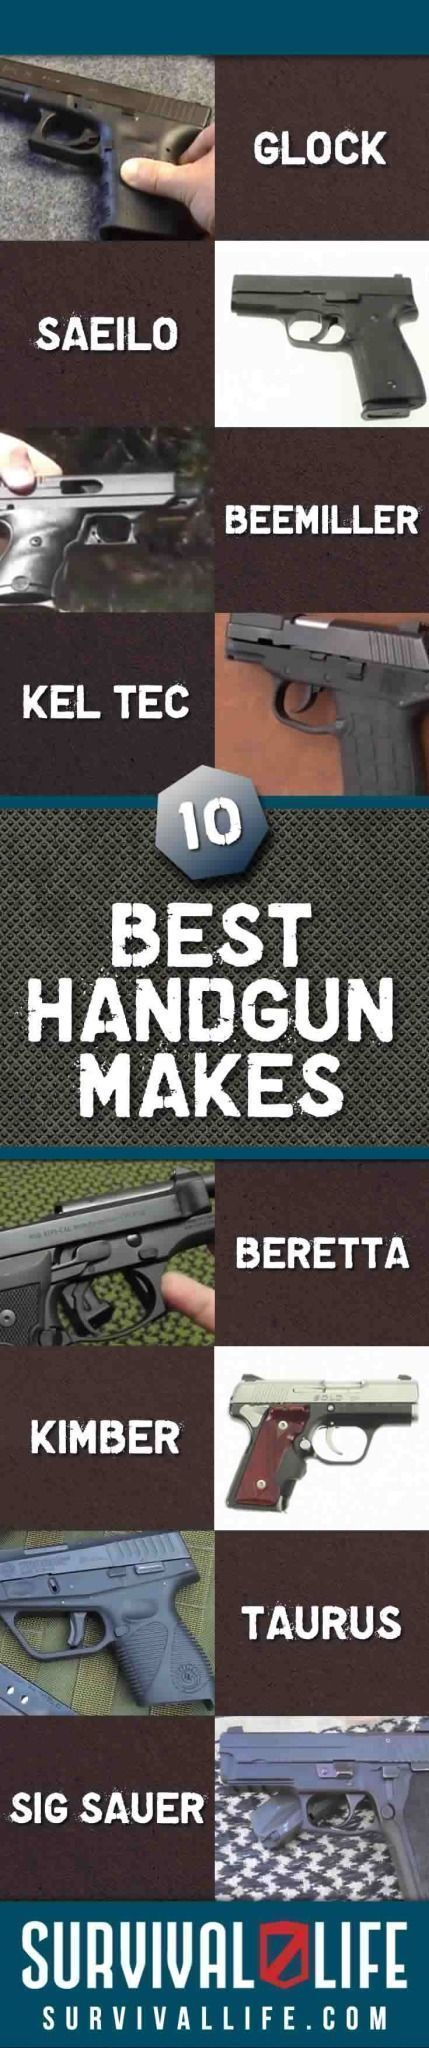 Top 10 Handgun Makes in the US   Guns and Ammo Tips for Self Defense by Survival Life Prepping By Survival Life http://survivallife.com/2014/03/24/best-10-handguns-us/